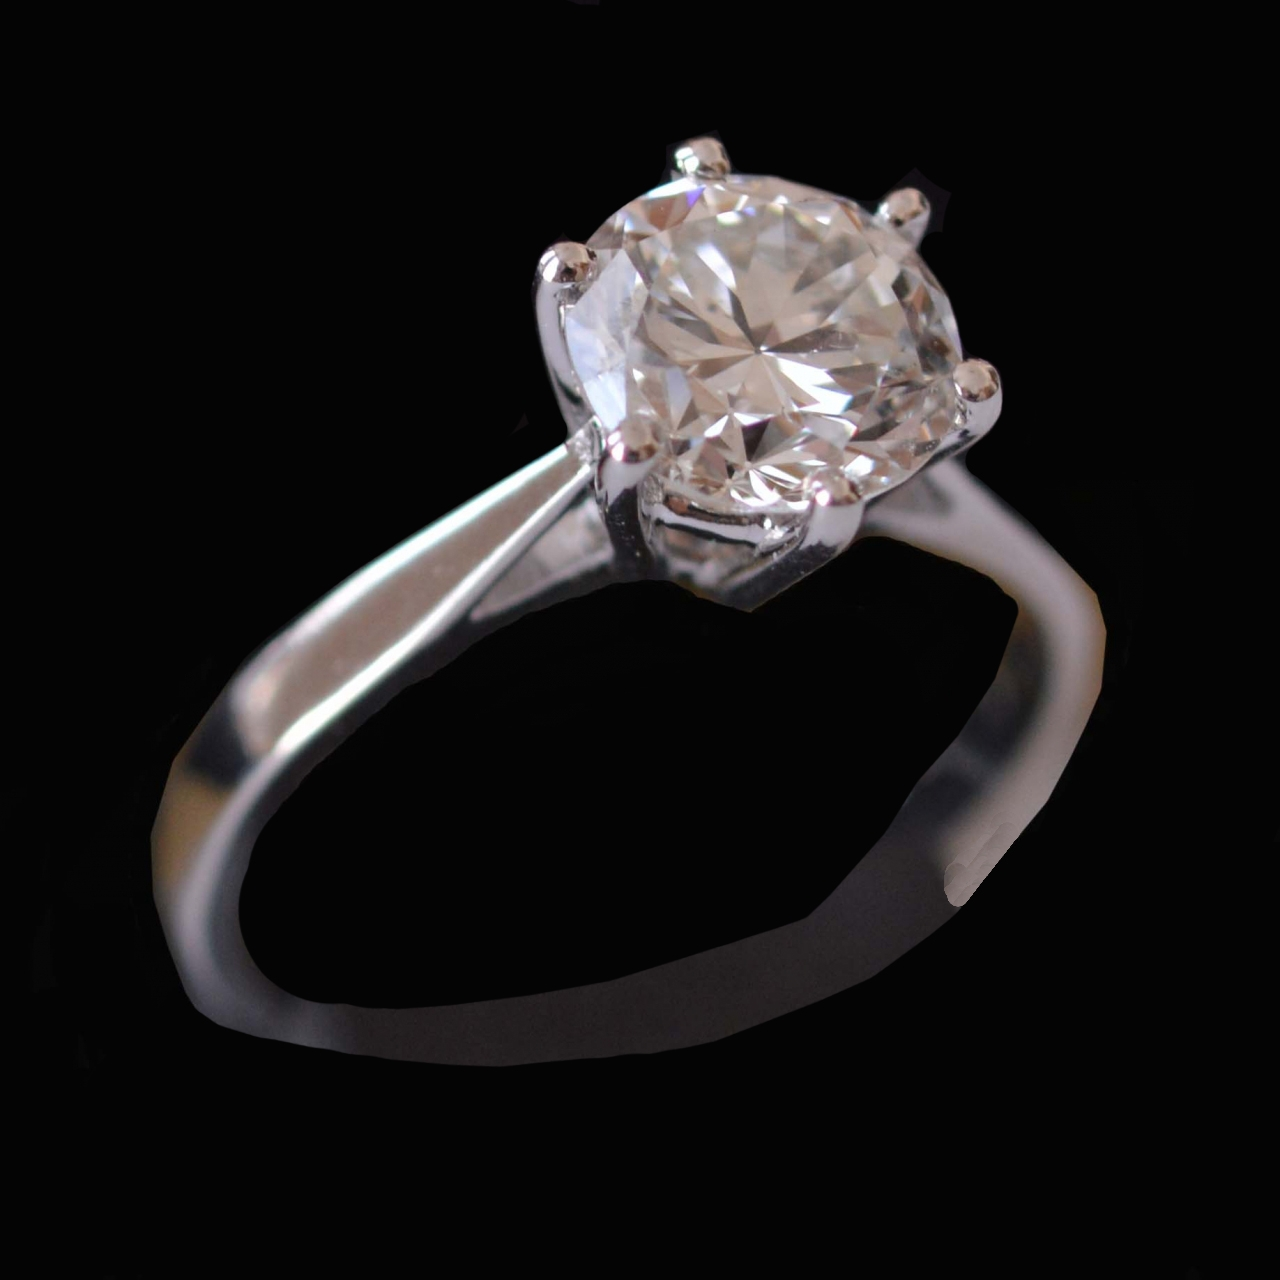 1.83 ct diamond engagement ring